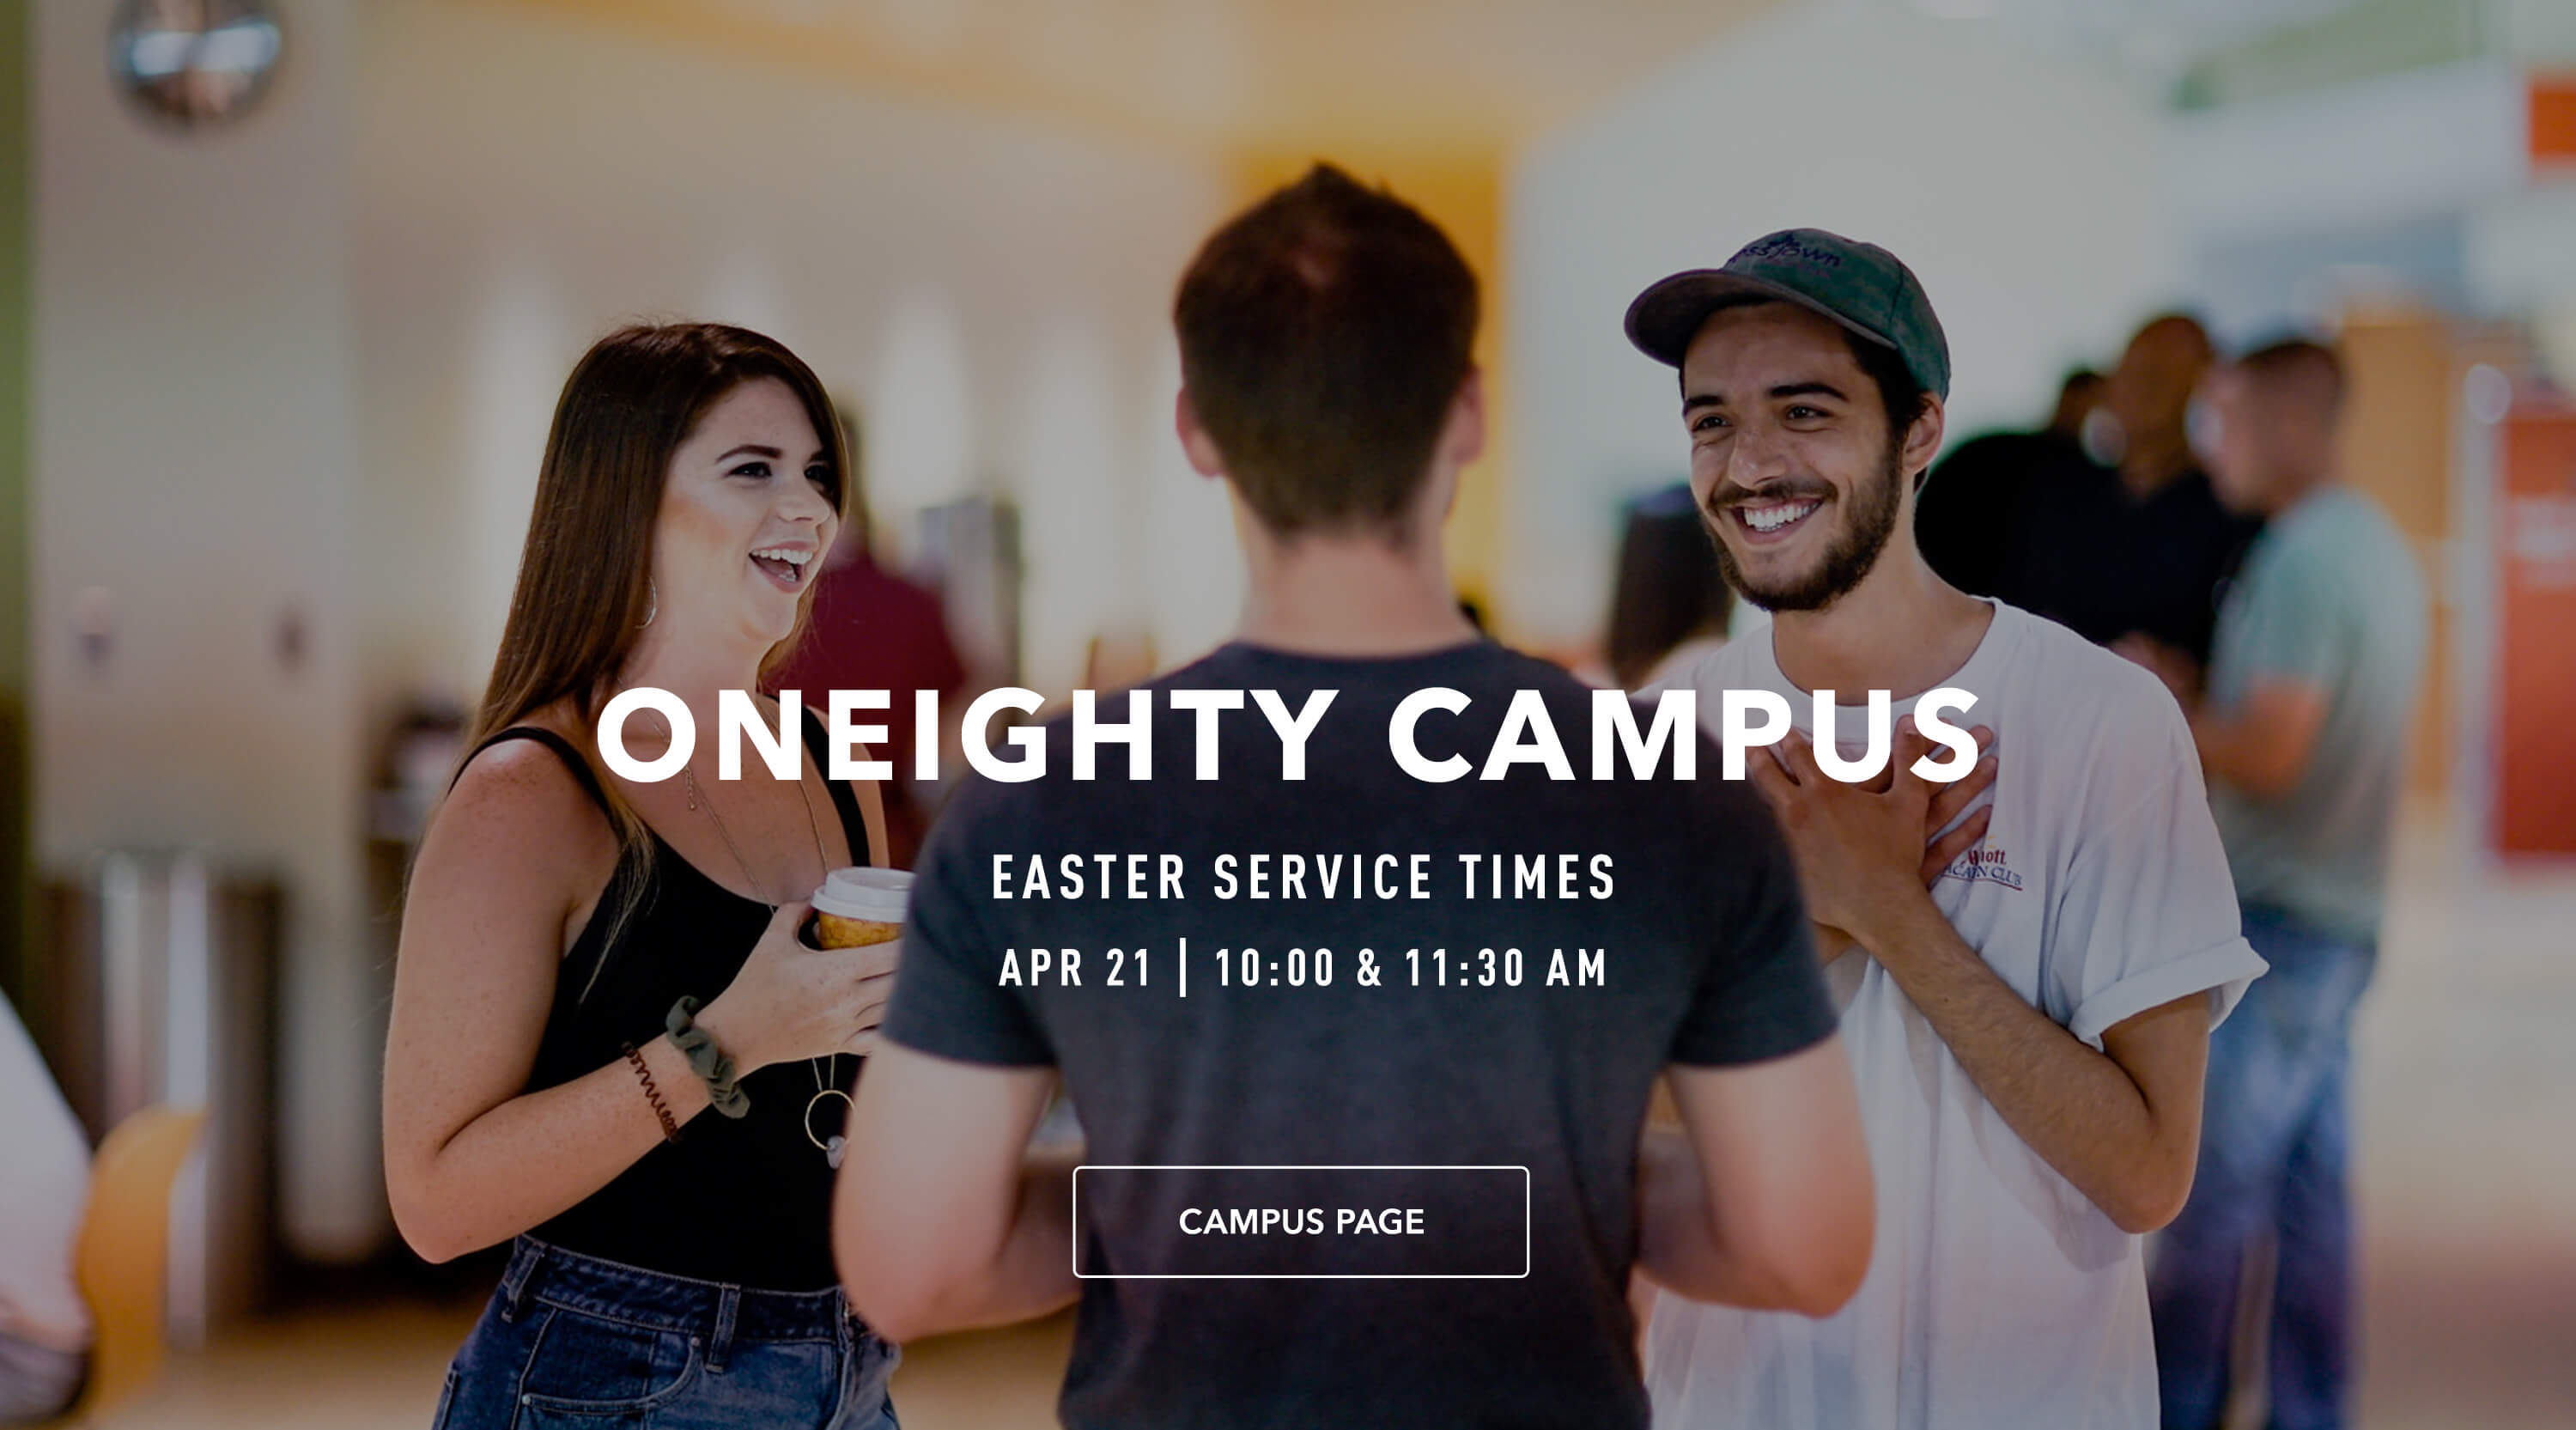 Oneighty Campus